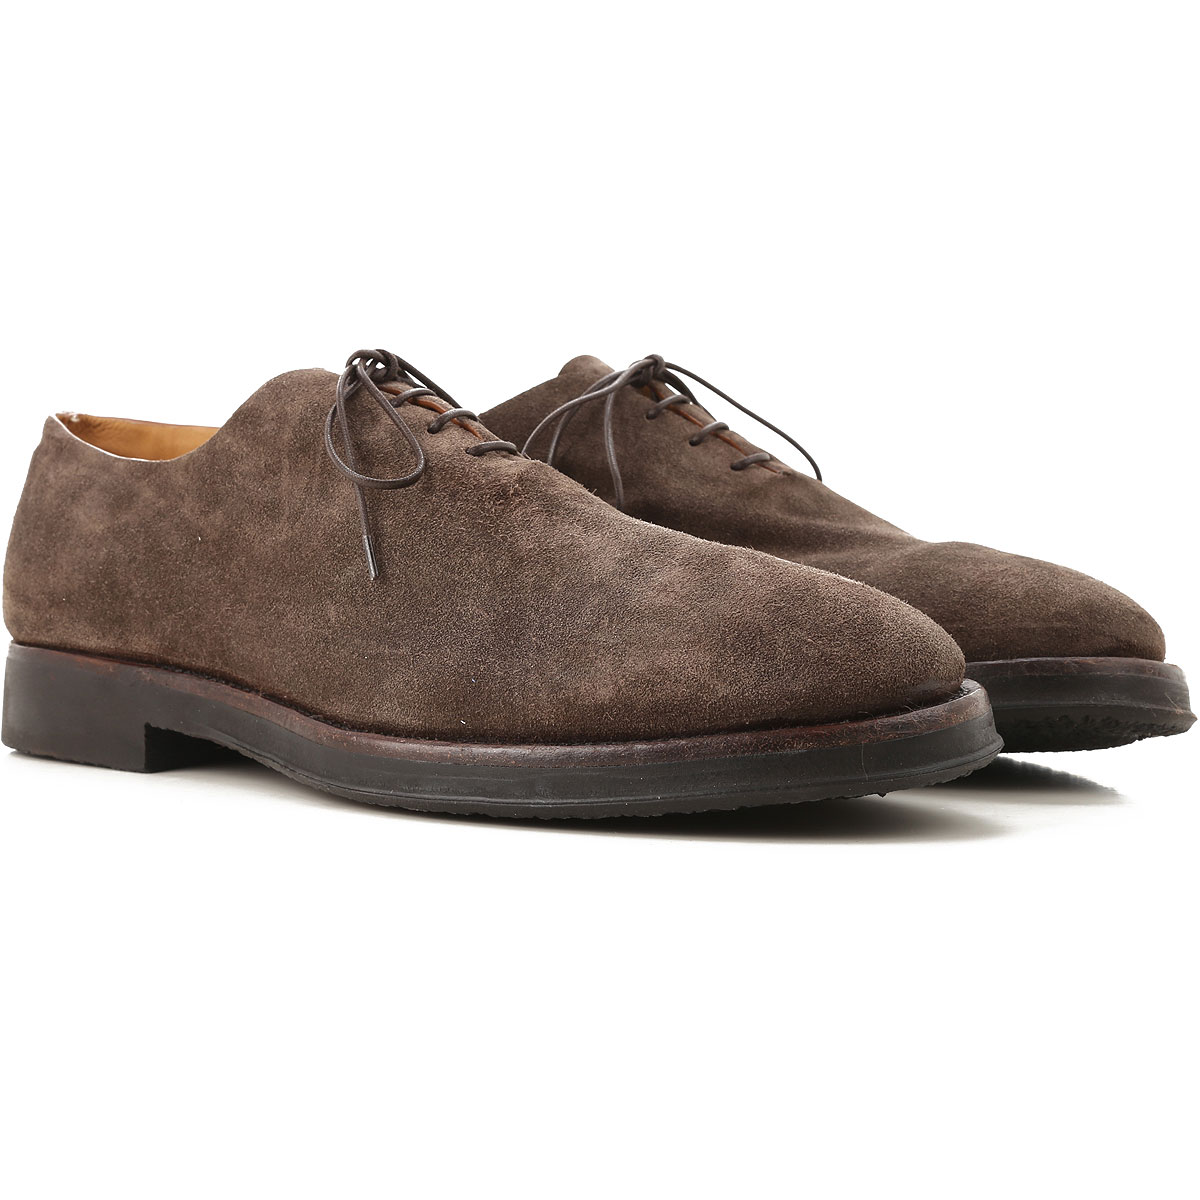 Image of Alberto Fasciani Lace Up Shoes for Men Oxfords, Derbies and Brogues, Elder, Suede leather, 2017, 10 11 7 9.5